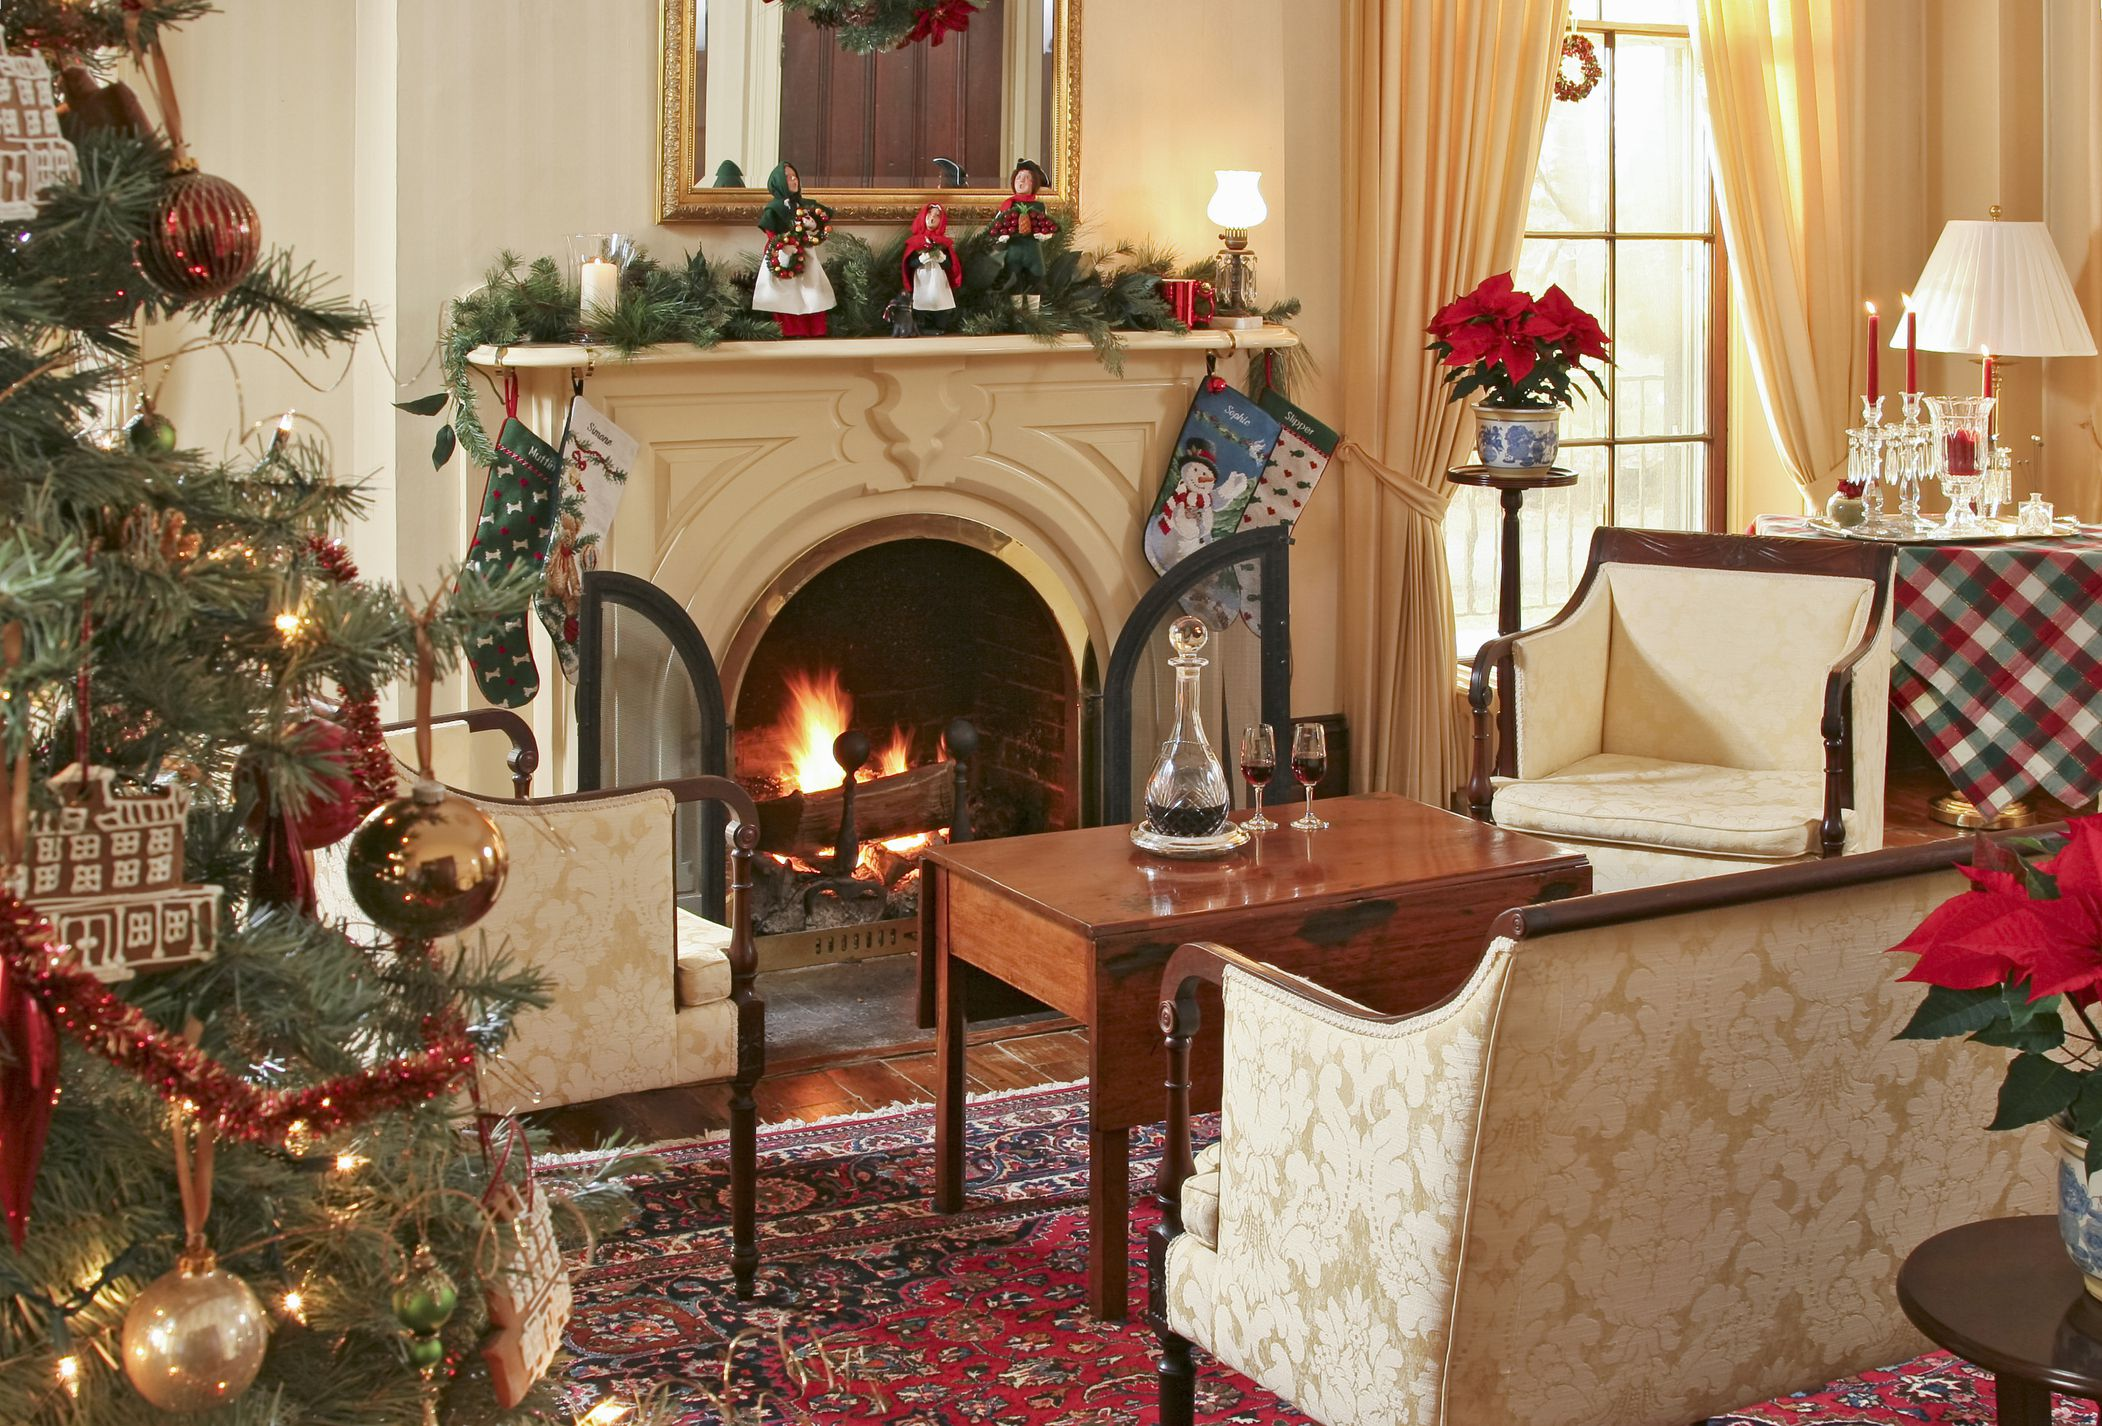 15 beautiful ways to decorate the living room for christmas - Christmas decorations for the living room ...